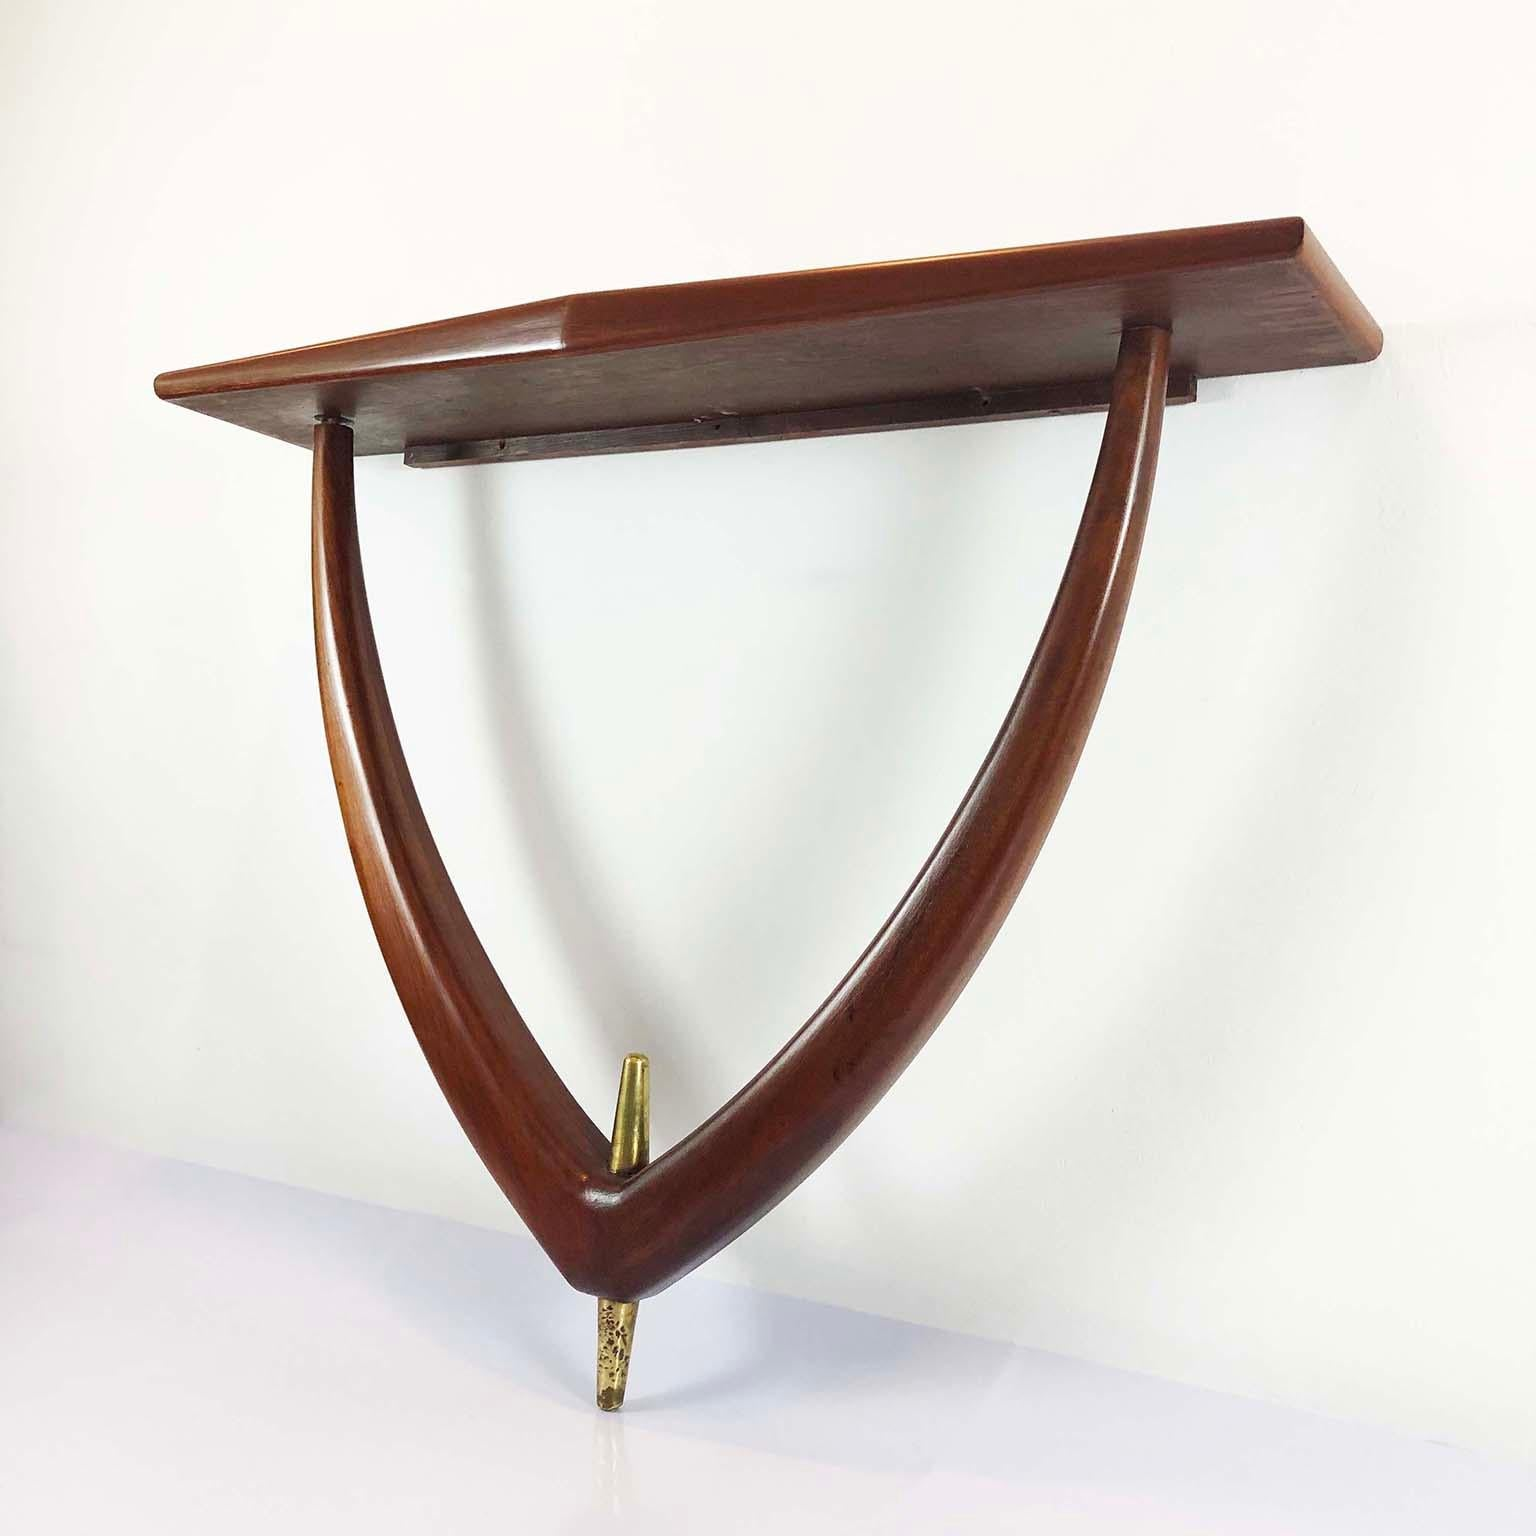 Midcentury Mexican Modernist Wall Mount Curvy Console By Eugenio Escudero